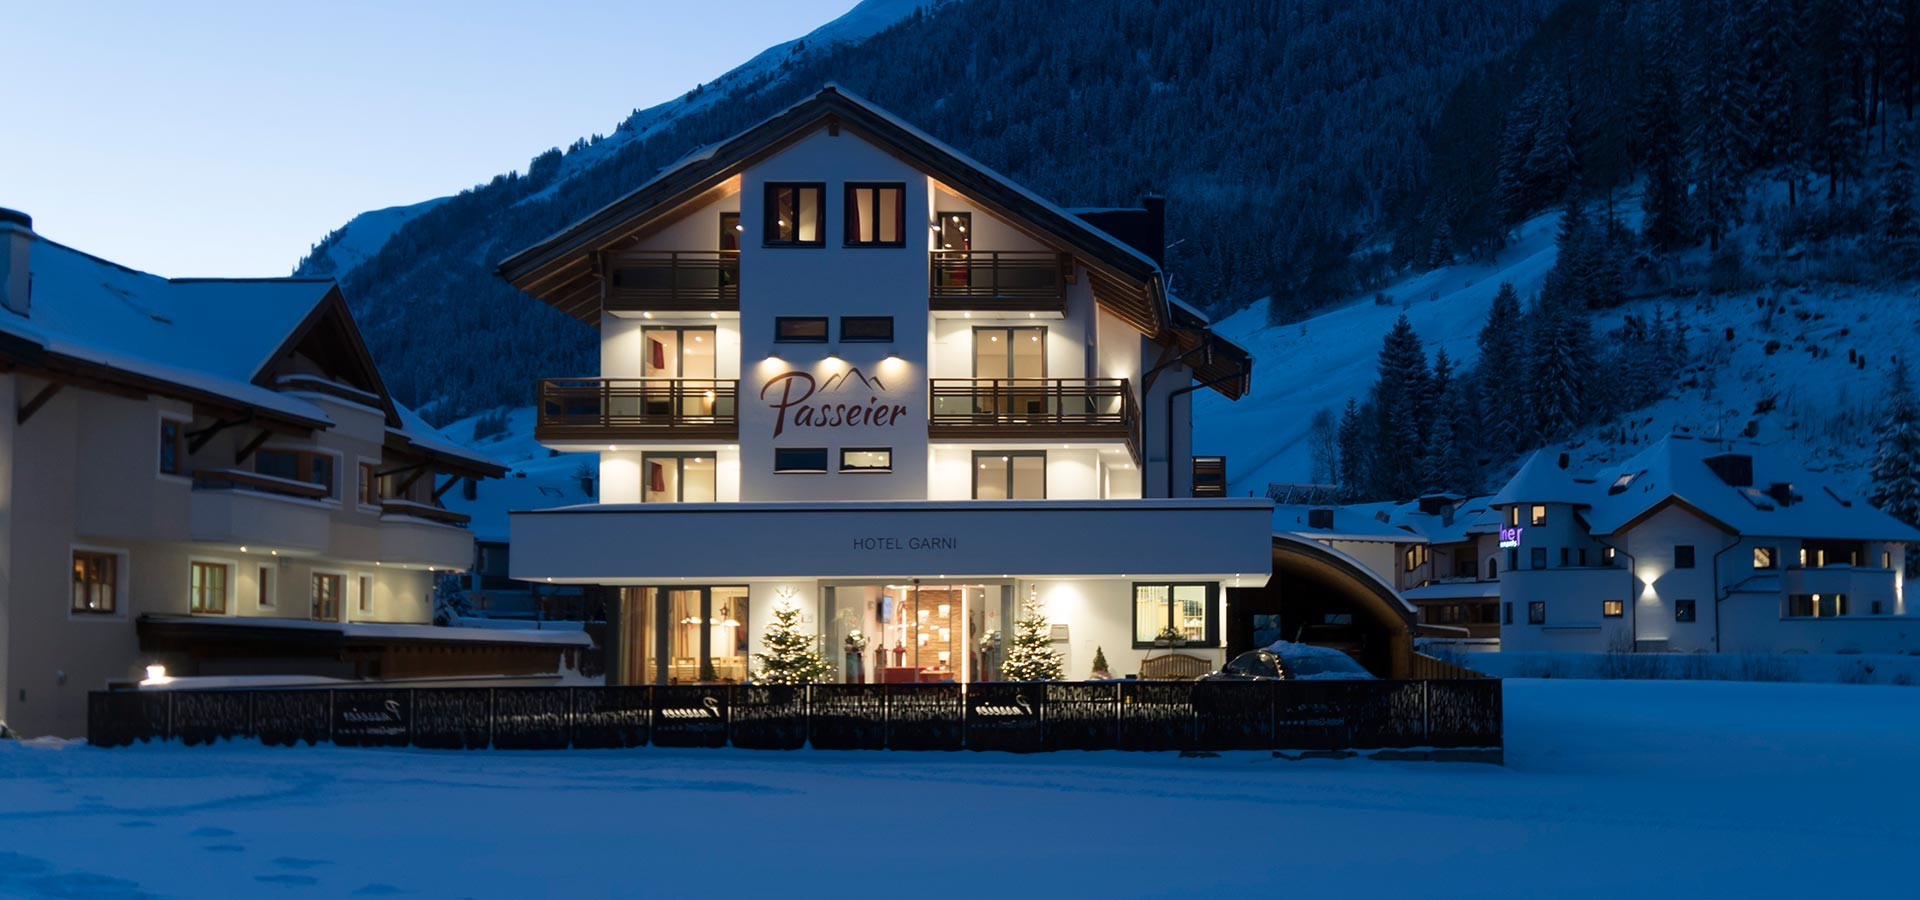 Welcome  to Hotel Garni Passeier in Ischgl